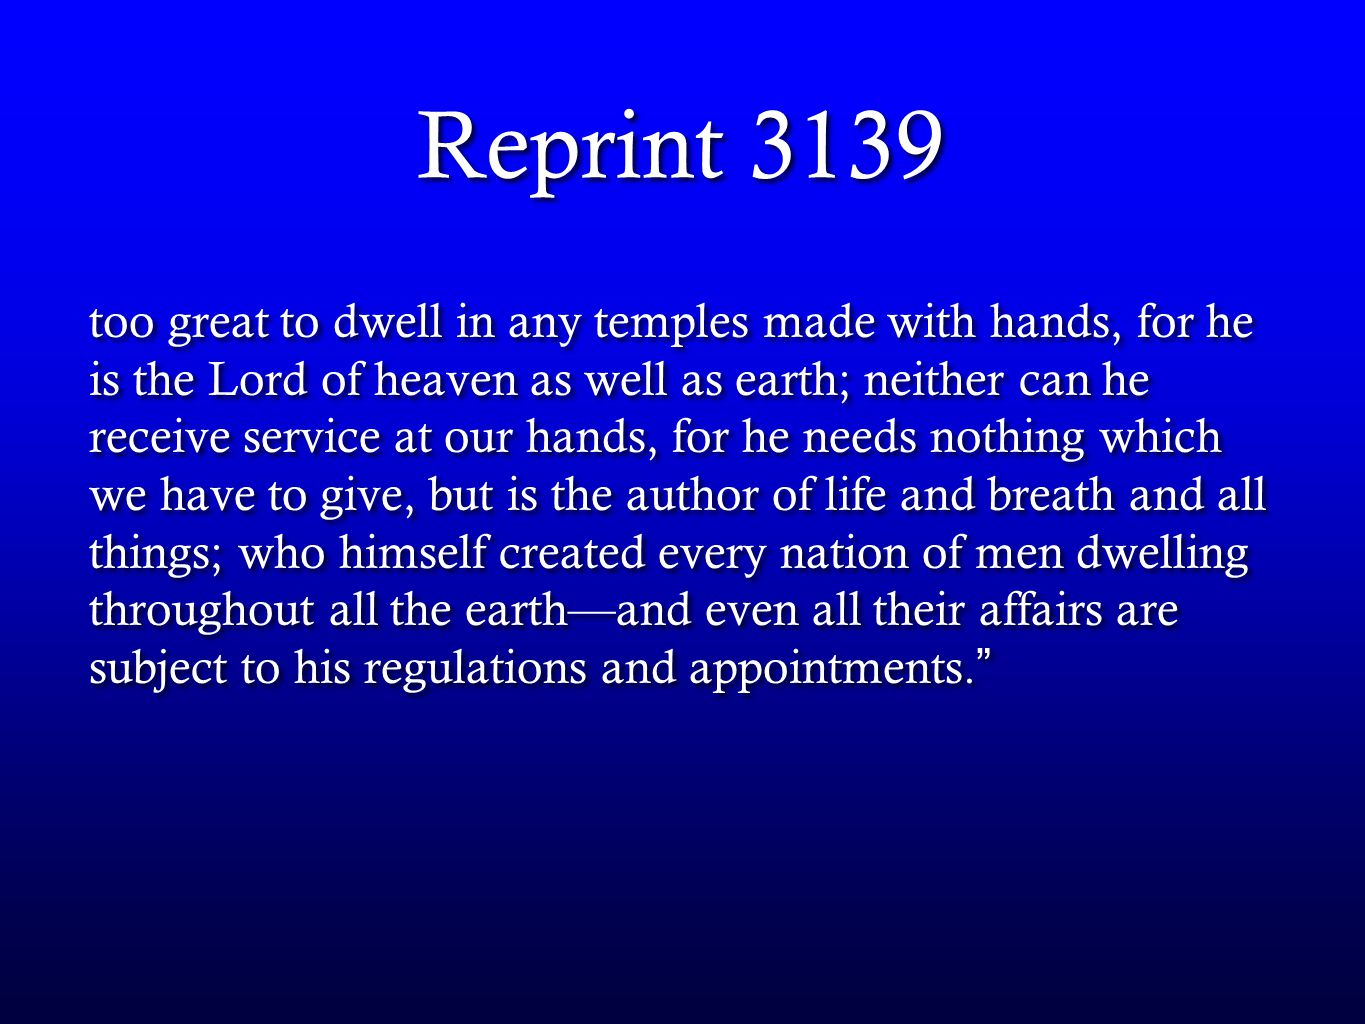 Reprint 3139 too great to dwell in any temples made with hands, for he is the Lord of heaven as well as earth; neither can he receive service at our hands, for he needs nothing which we have to give, but is the author of life and breath and all things; who himself created every nation of men dwelling throughout all the earth—and even all their affairs are subject to his regulations and appointments.